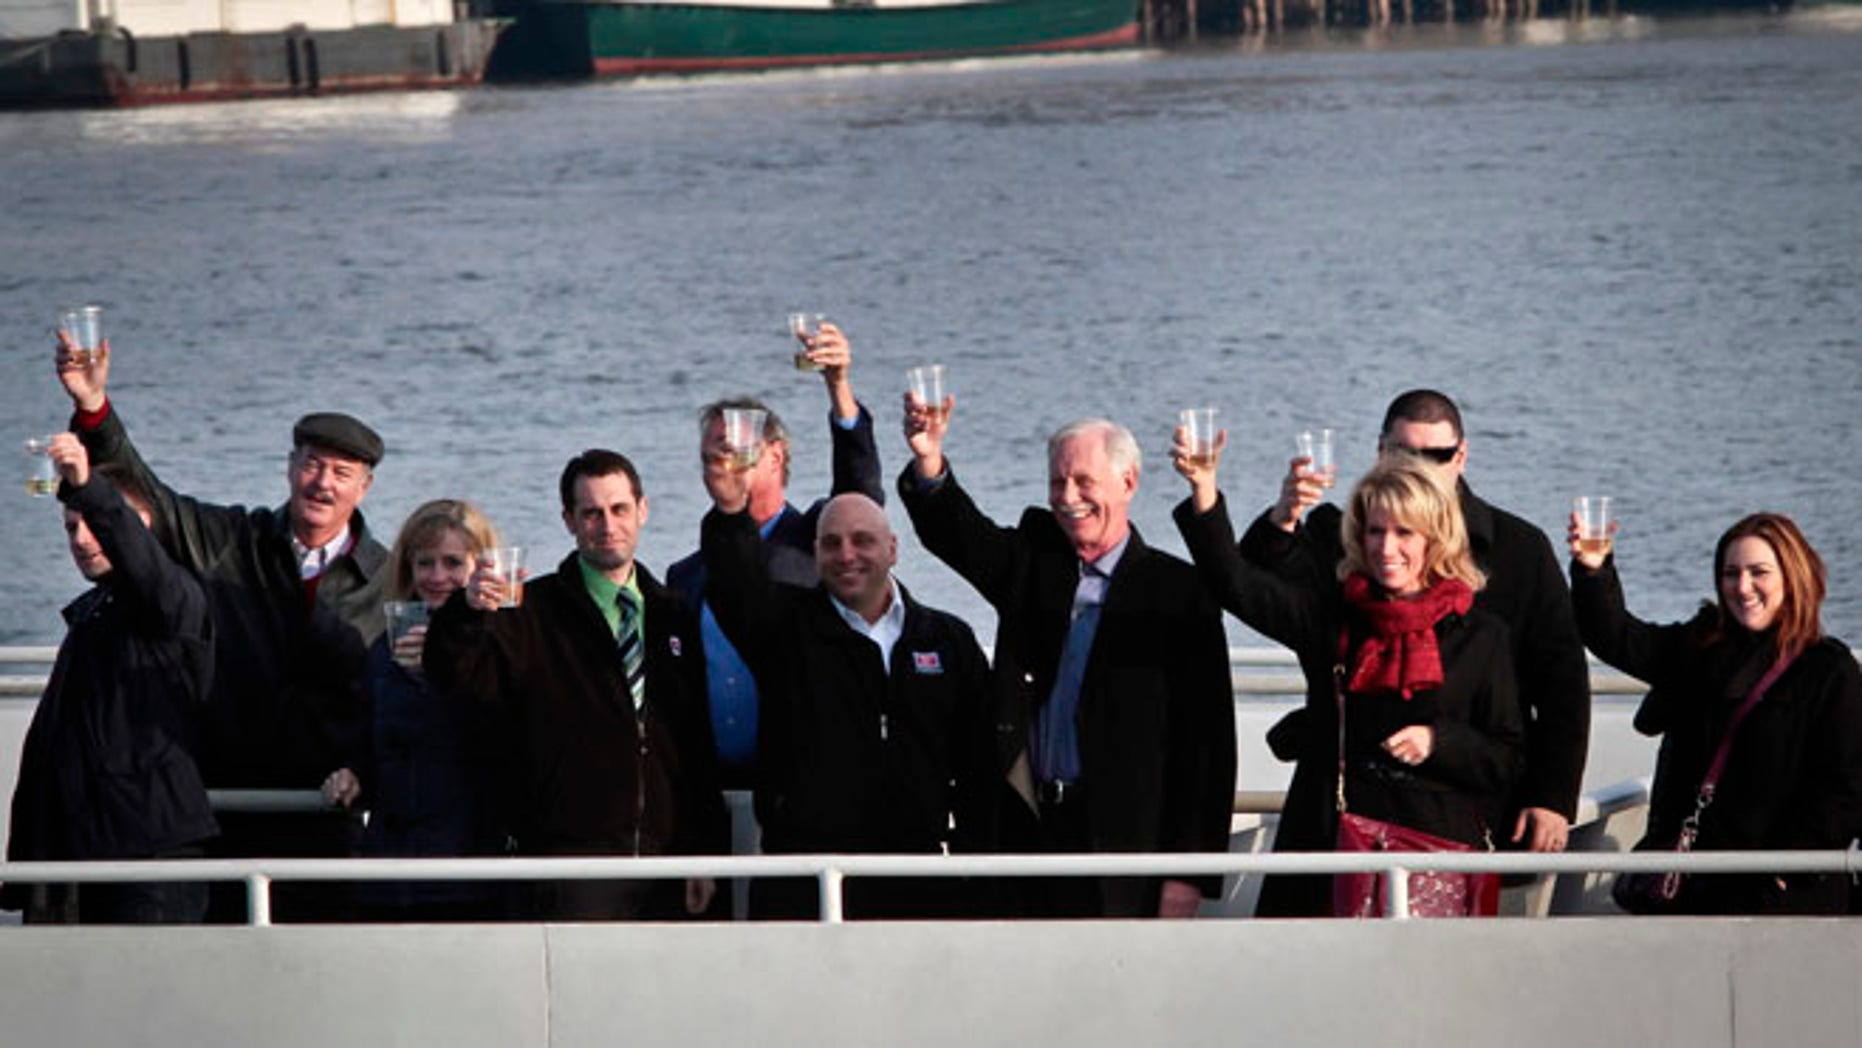 """Jan. 15, 2014: Captain Chesley """"Sully"""" Sullenberger III, fourth from right, pilot who safely glided U.S. Airways Flight 1549 with155 passengers and crew to a water landing 5 years ago, join survivors and rescuers in a toast marking the anniversary of the event known as the """"miracle on the Hudson,"""" in New York."""